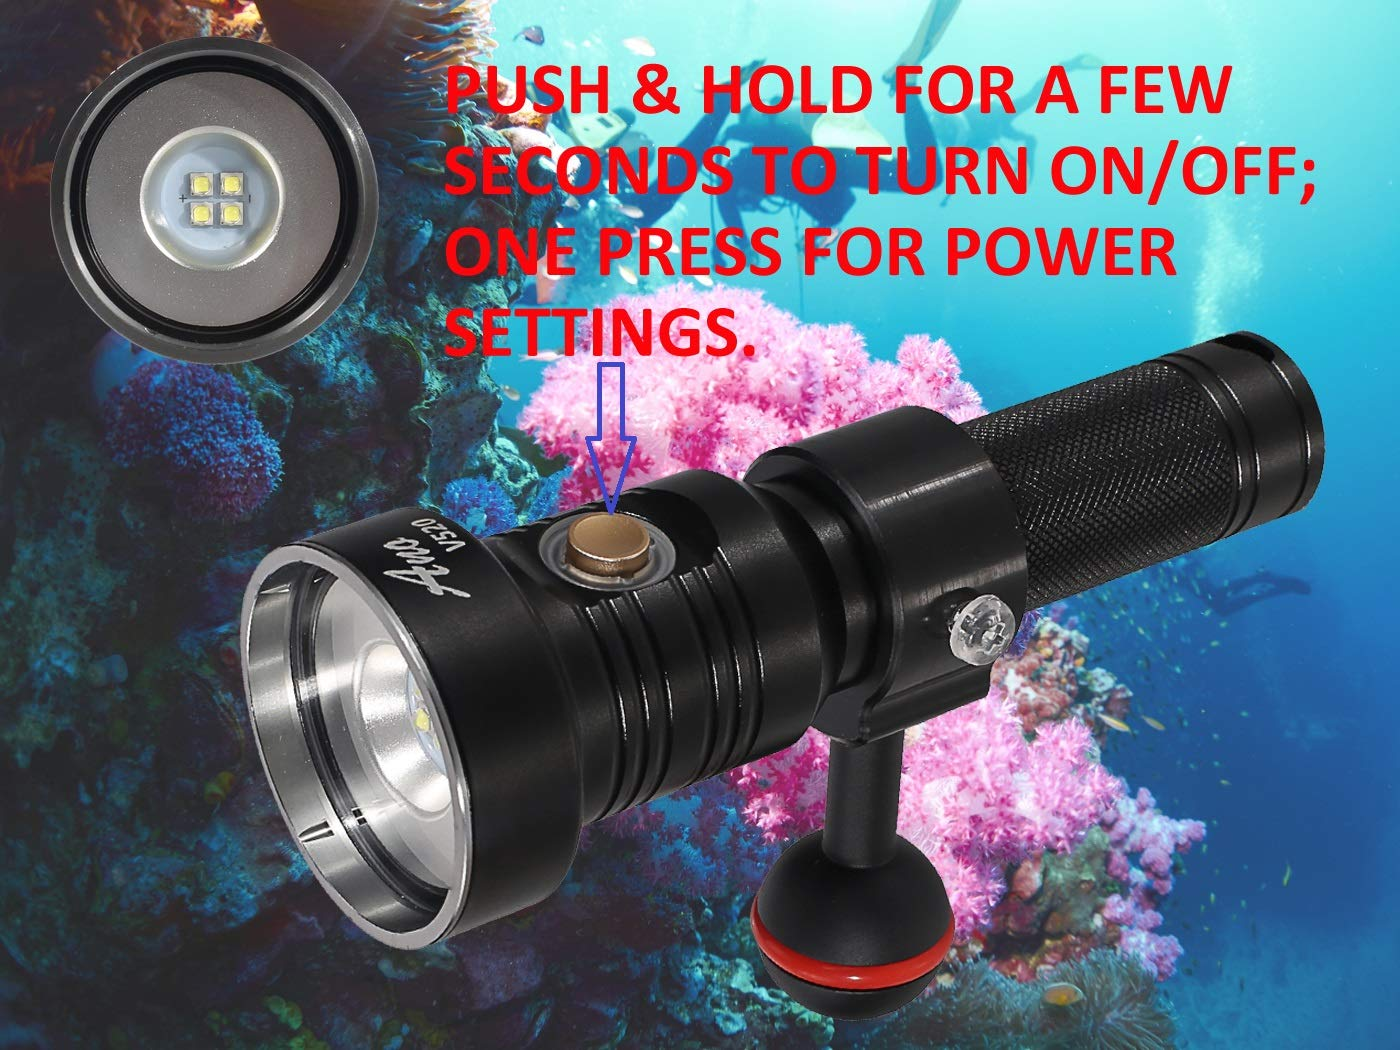 ANO V520 Dive Video Light 2000 Lumen with 2 Power Settings Included ICR18650 Battery and USB Charger Scuba Underwater Photography Light Waterproof 650ft by ANO